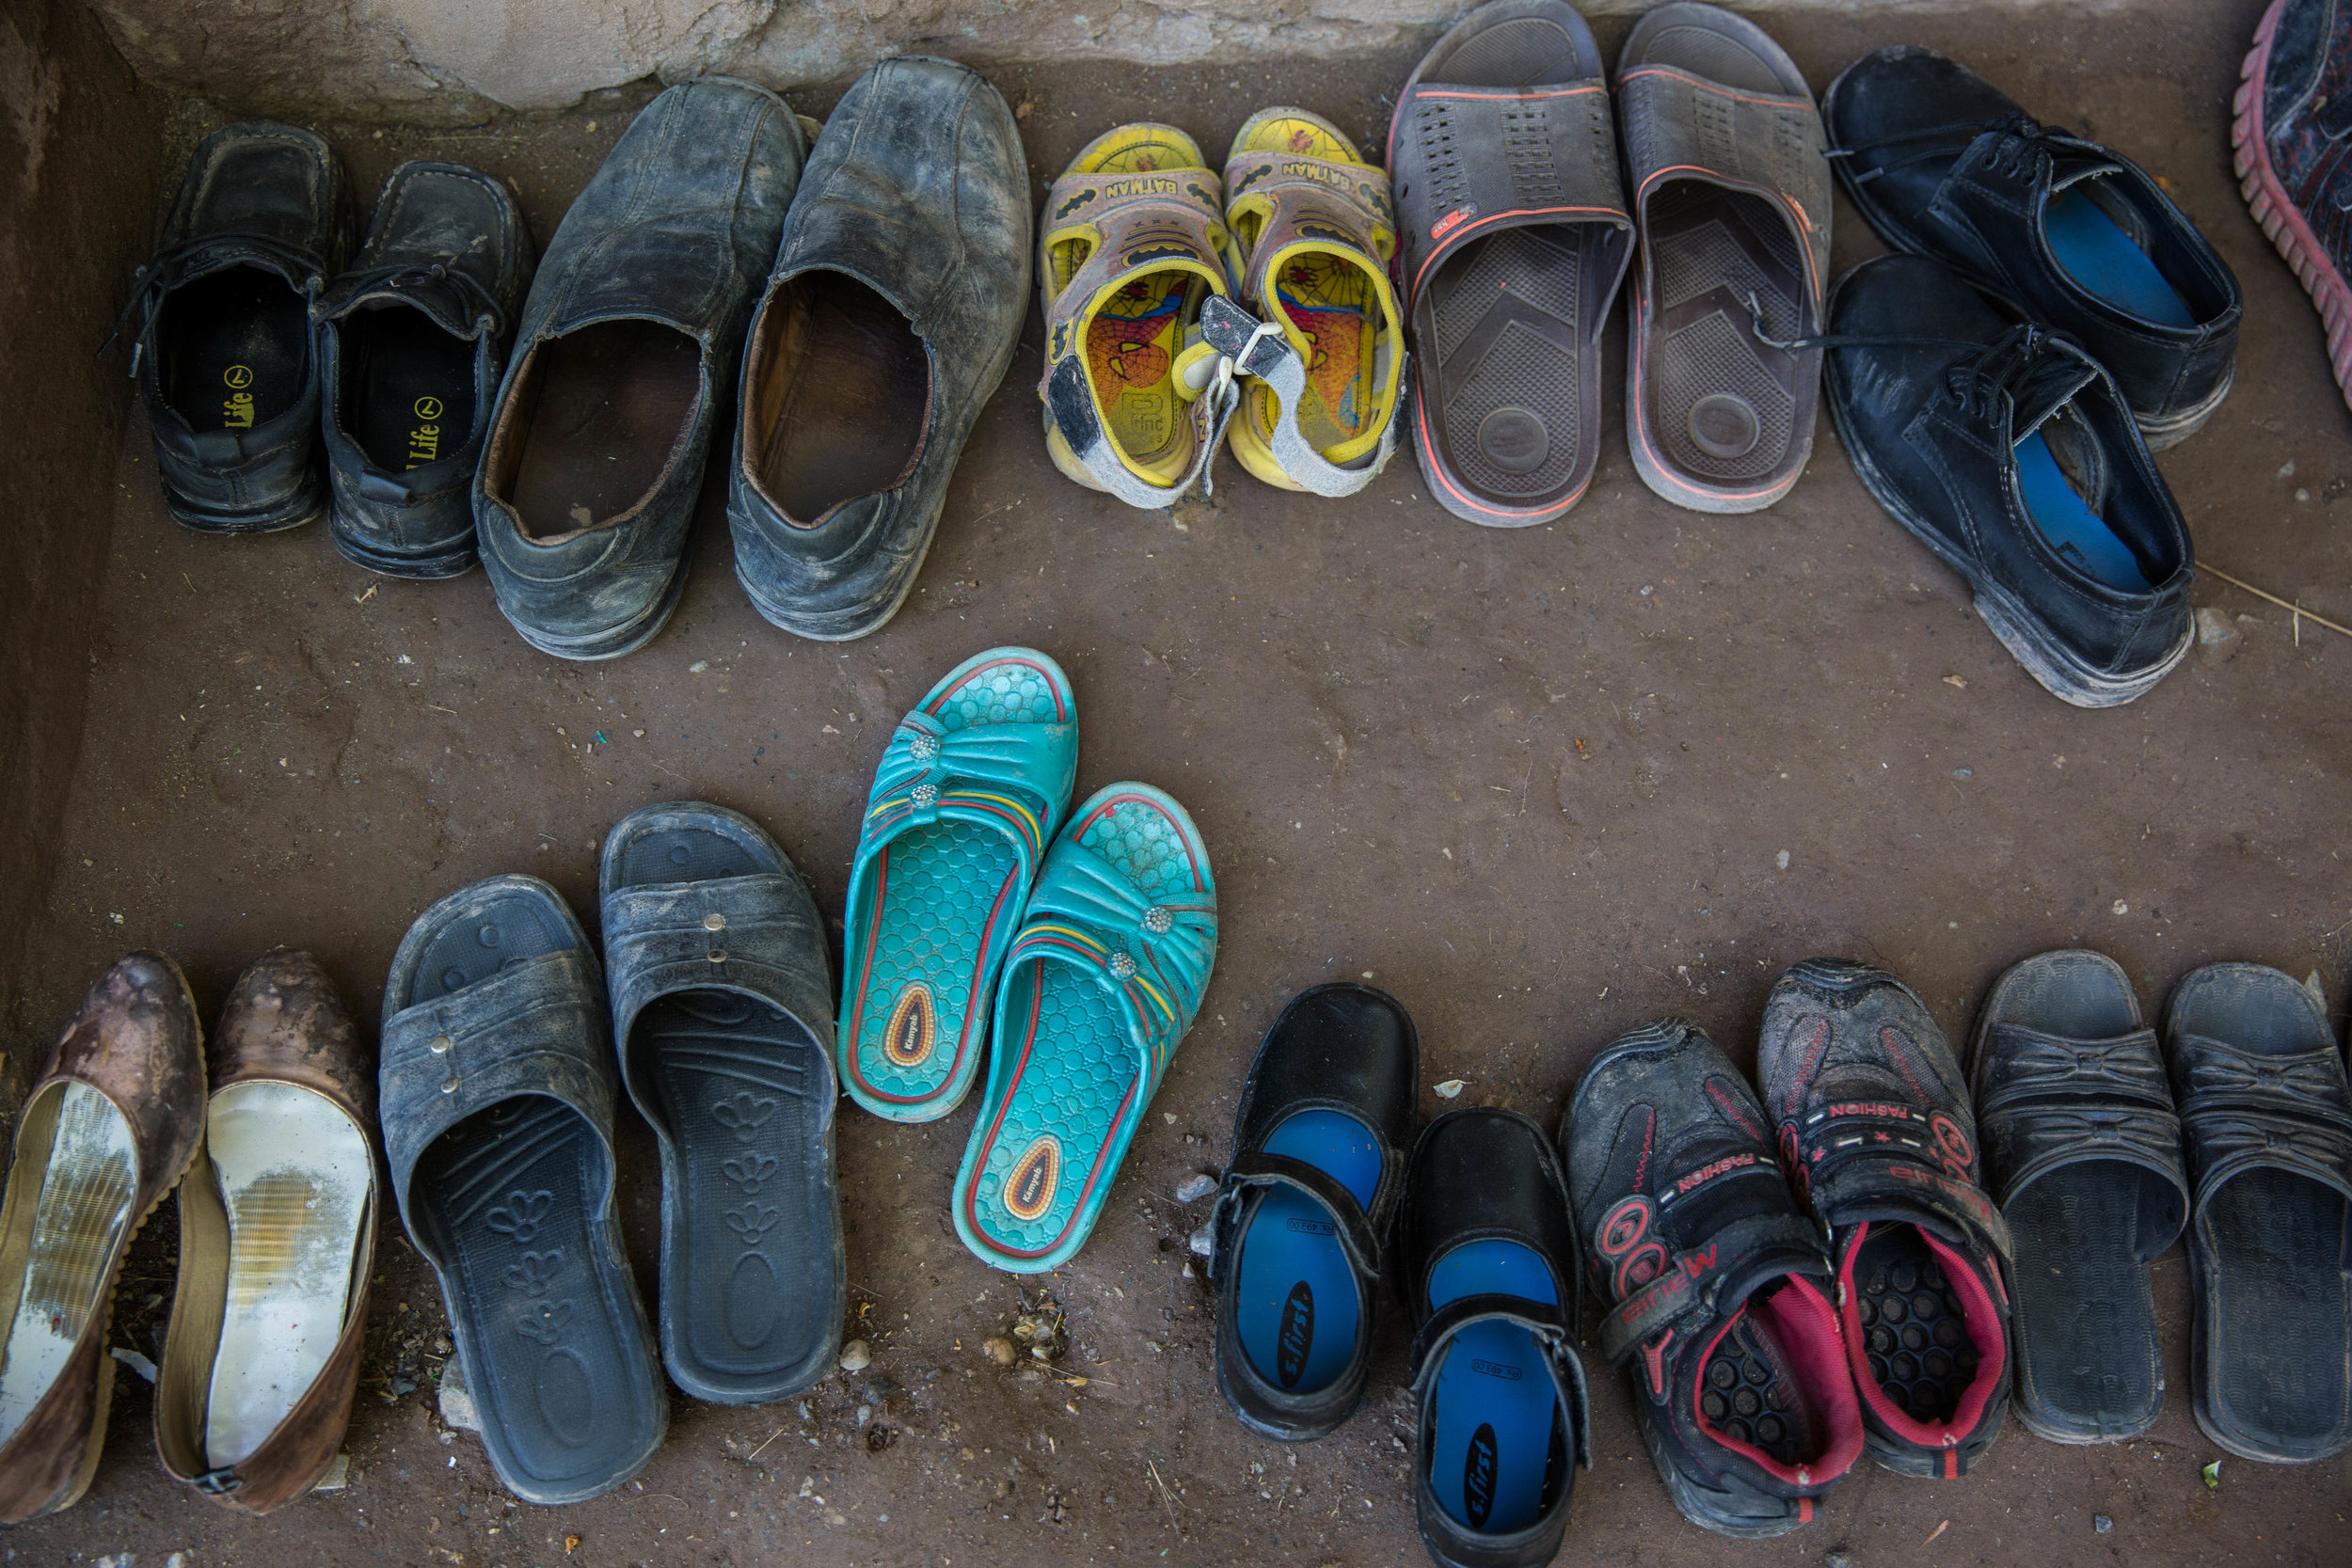 Young children from a remote village in Chitral leave their shoes outside for class at a Basic Education Community School on April 26, 2018 in District Chitral, Khyber Pakhtunkhwa, Pakistan.